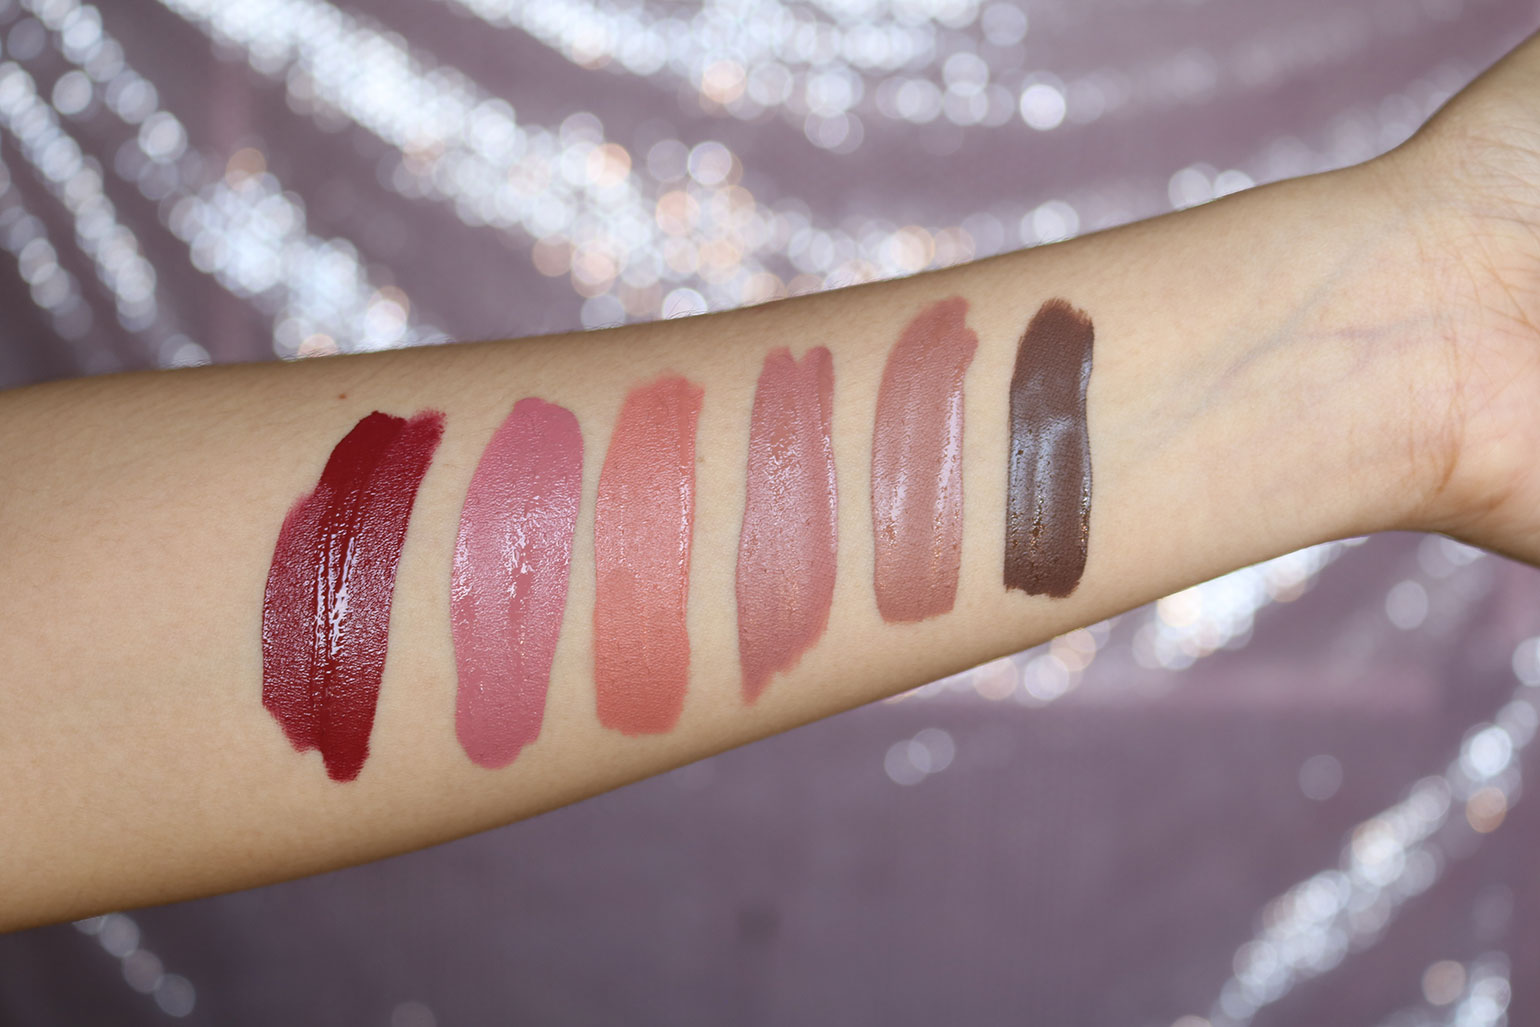 11 Cathy Doll Nude Me Liquid Lip Matte Review Swatches - Gen-zel She Sings Beauty